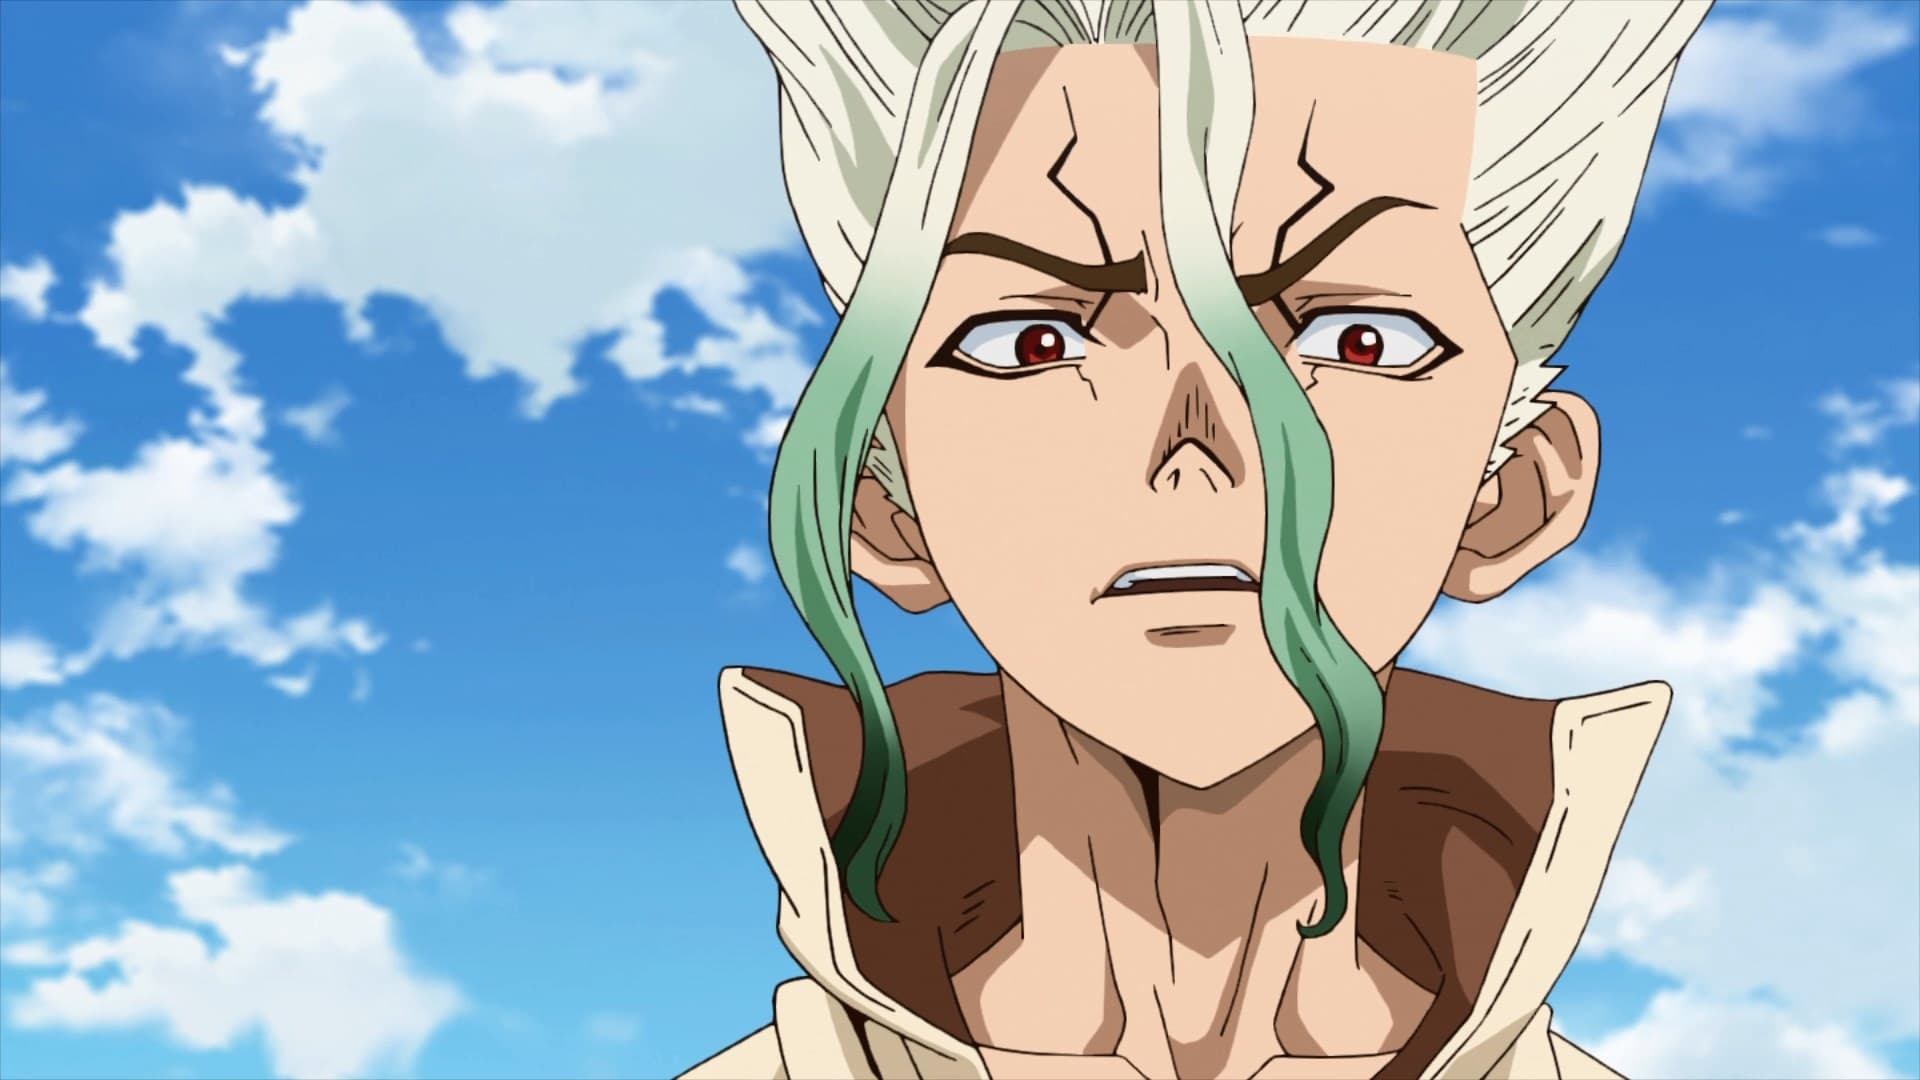 Dr stone episode 1 streaming vostfr